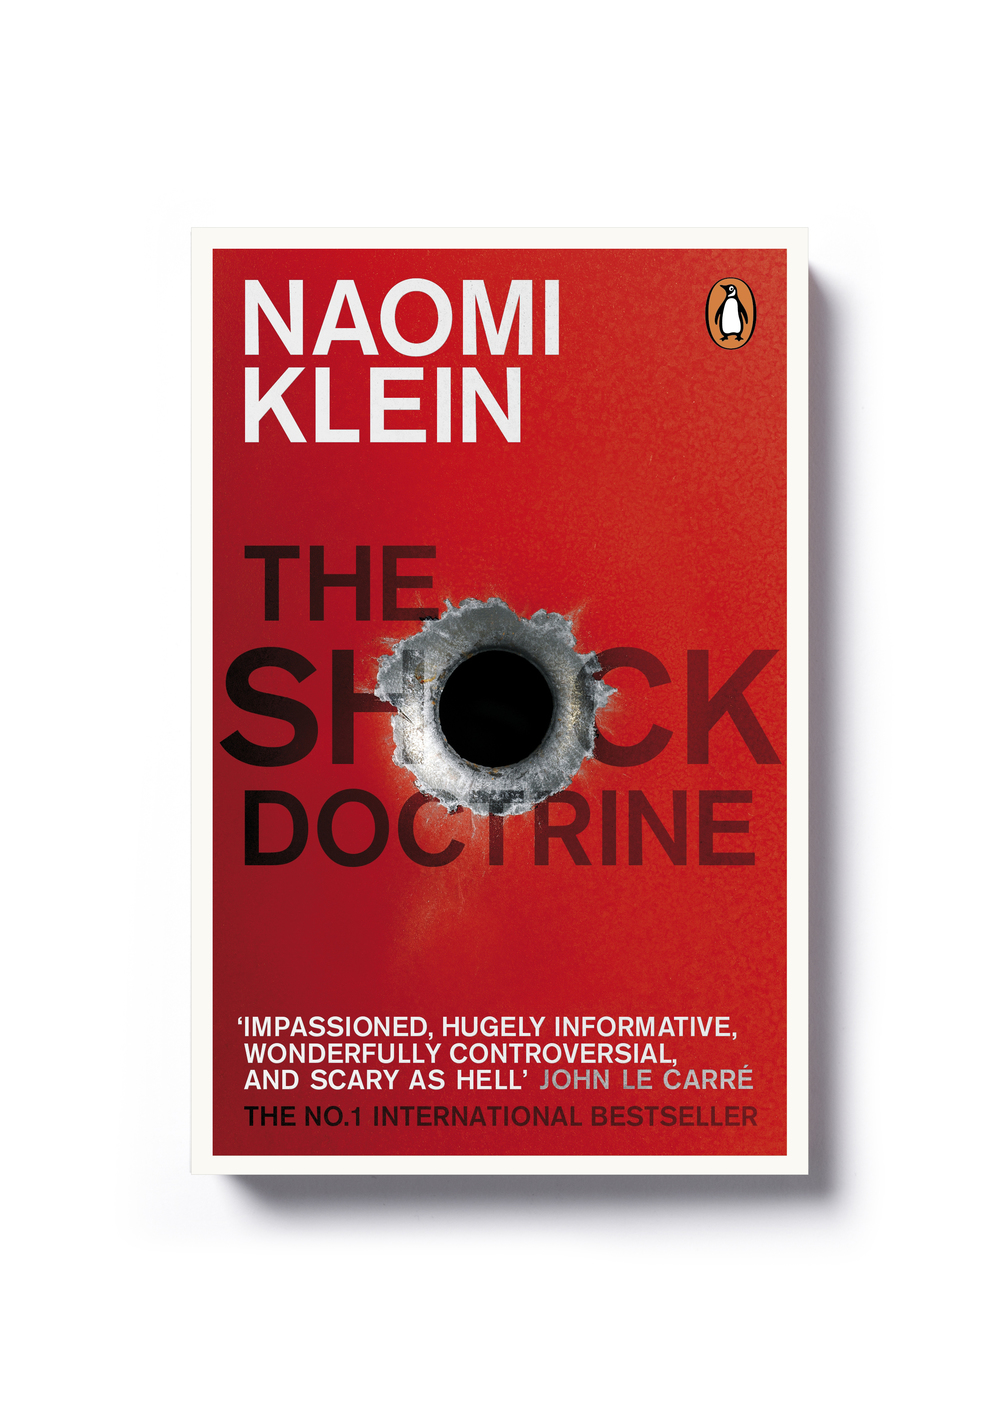 The Shock Doctrine by Naomi Klein - Design: Jim Stoddart